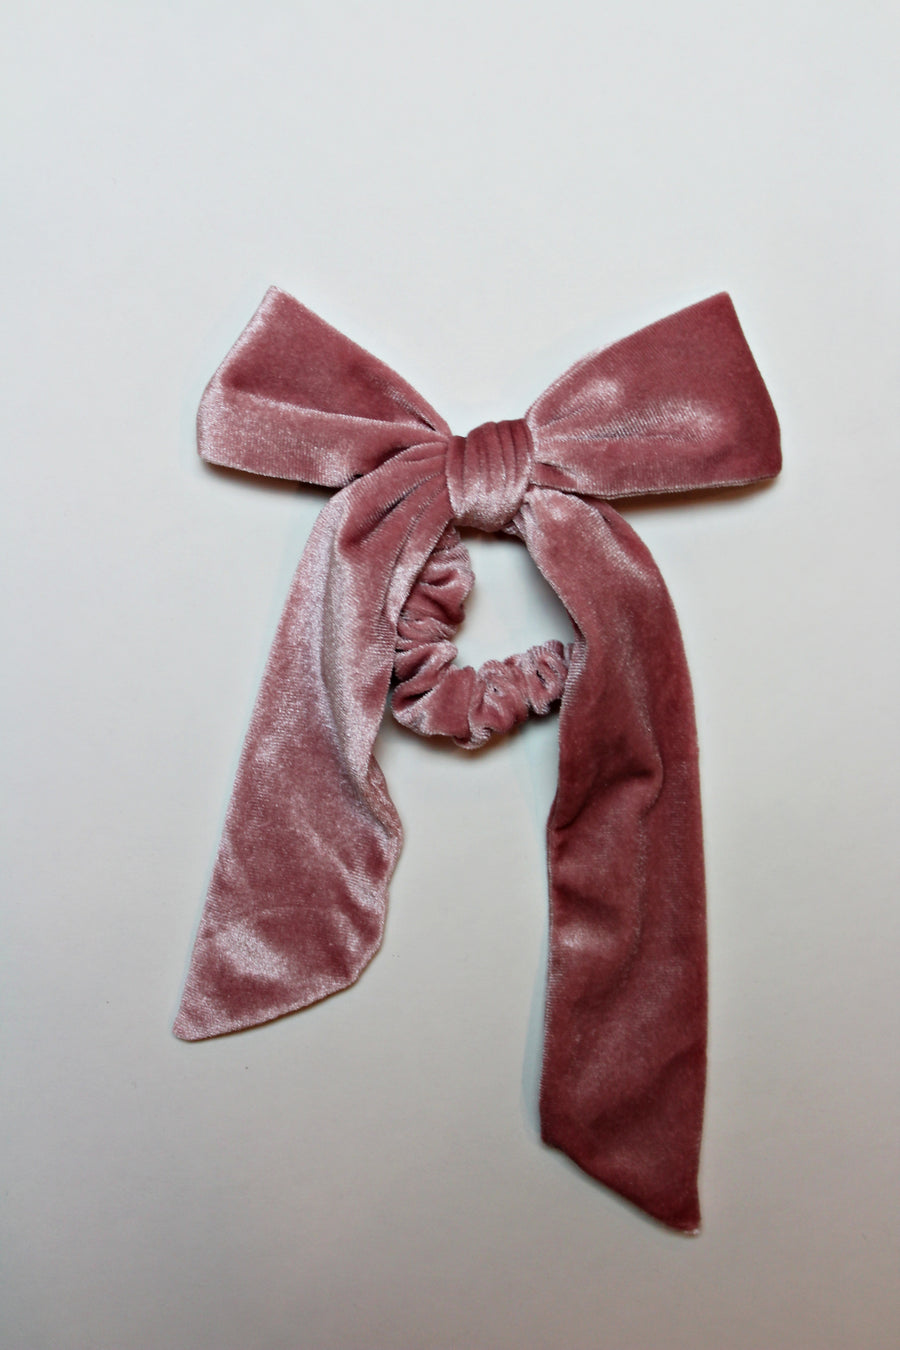 Justin Jean® Luxury Velvet Bow Scrunchies! 3 Pack: Limited Stock